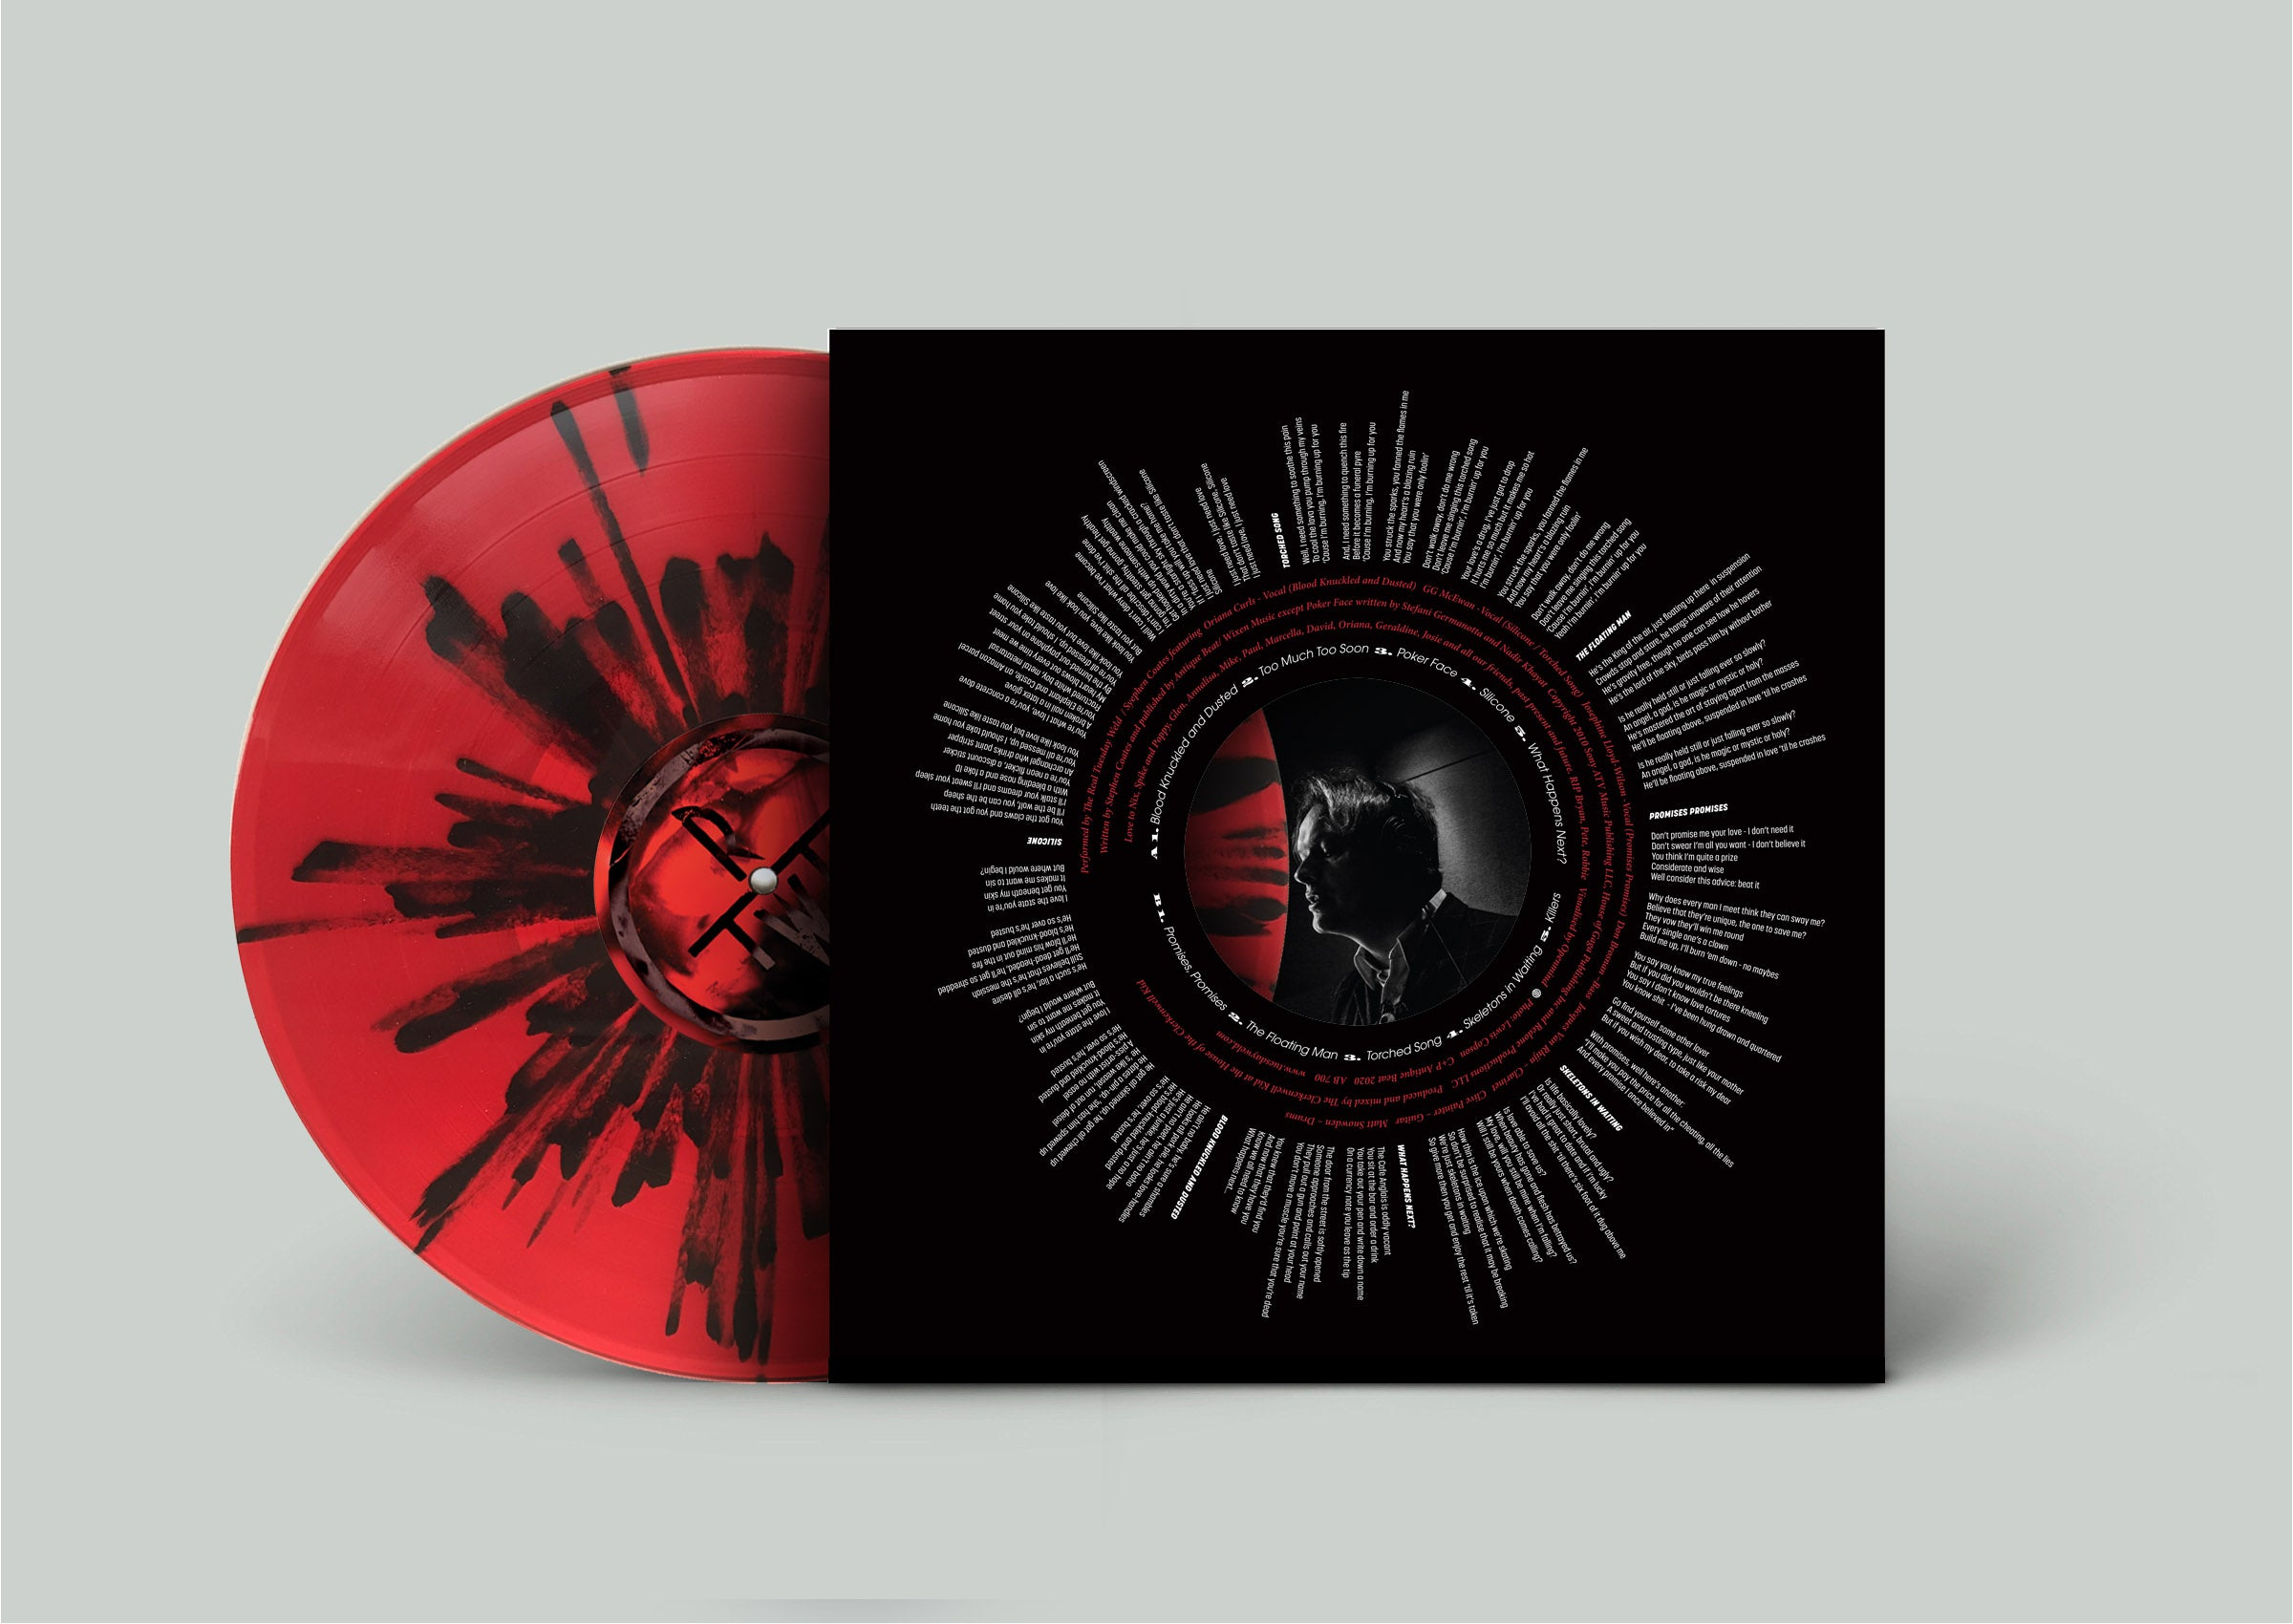 "BLOOD - Limited Edition 12"" Vinyl Album - Currently Sold Out"